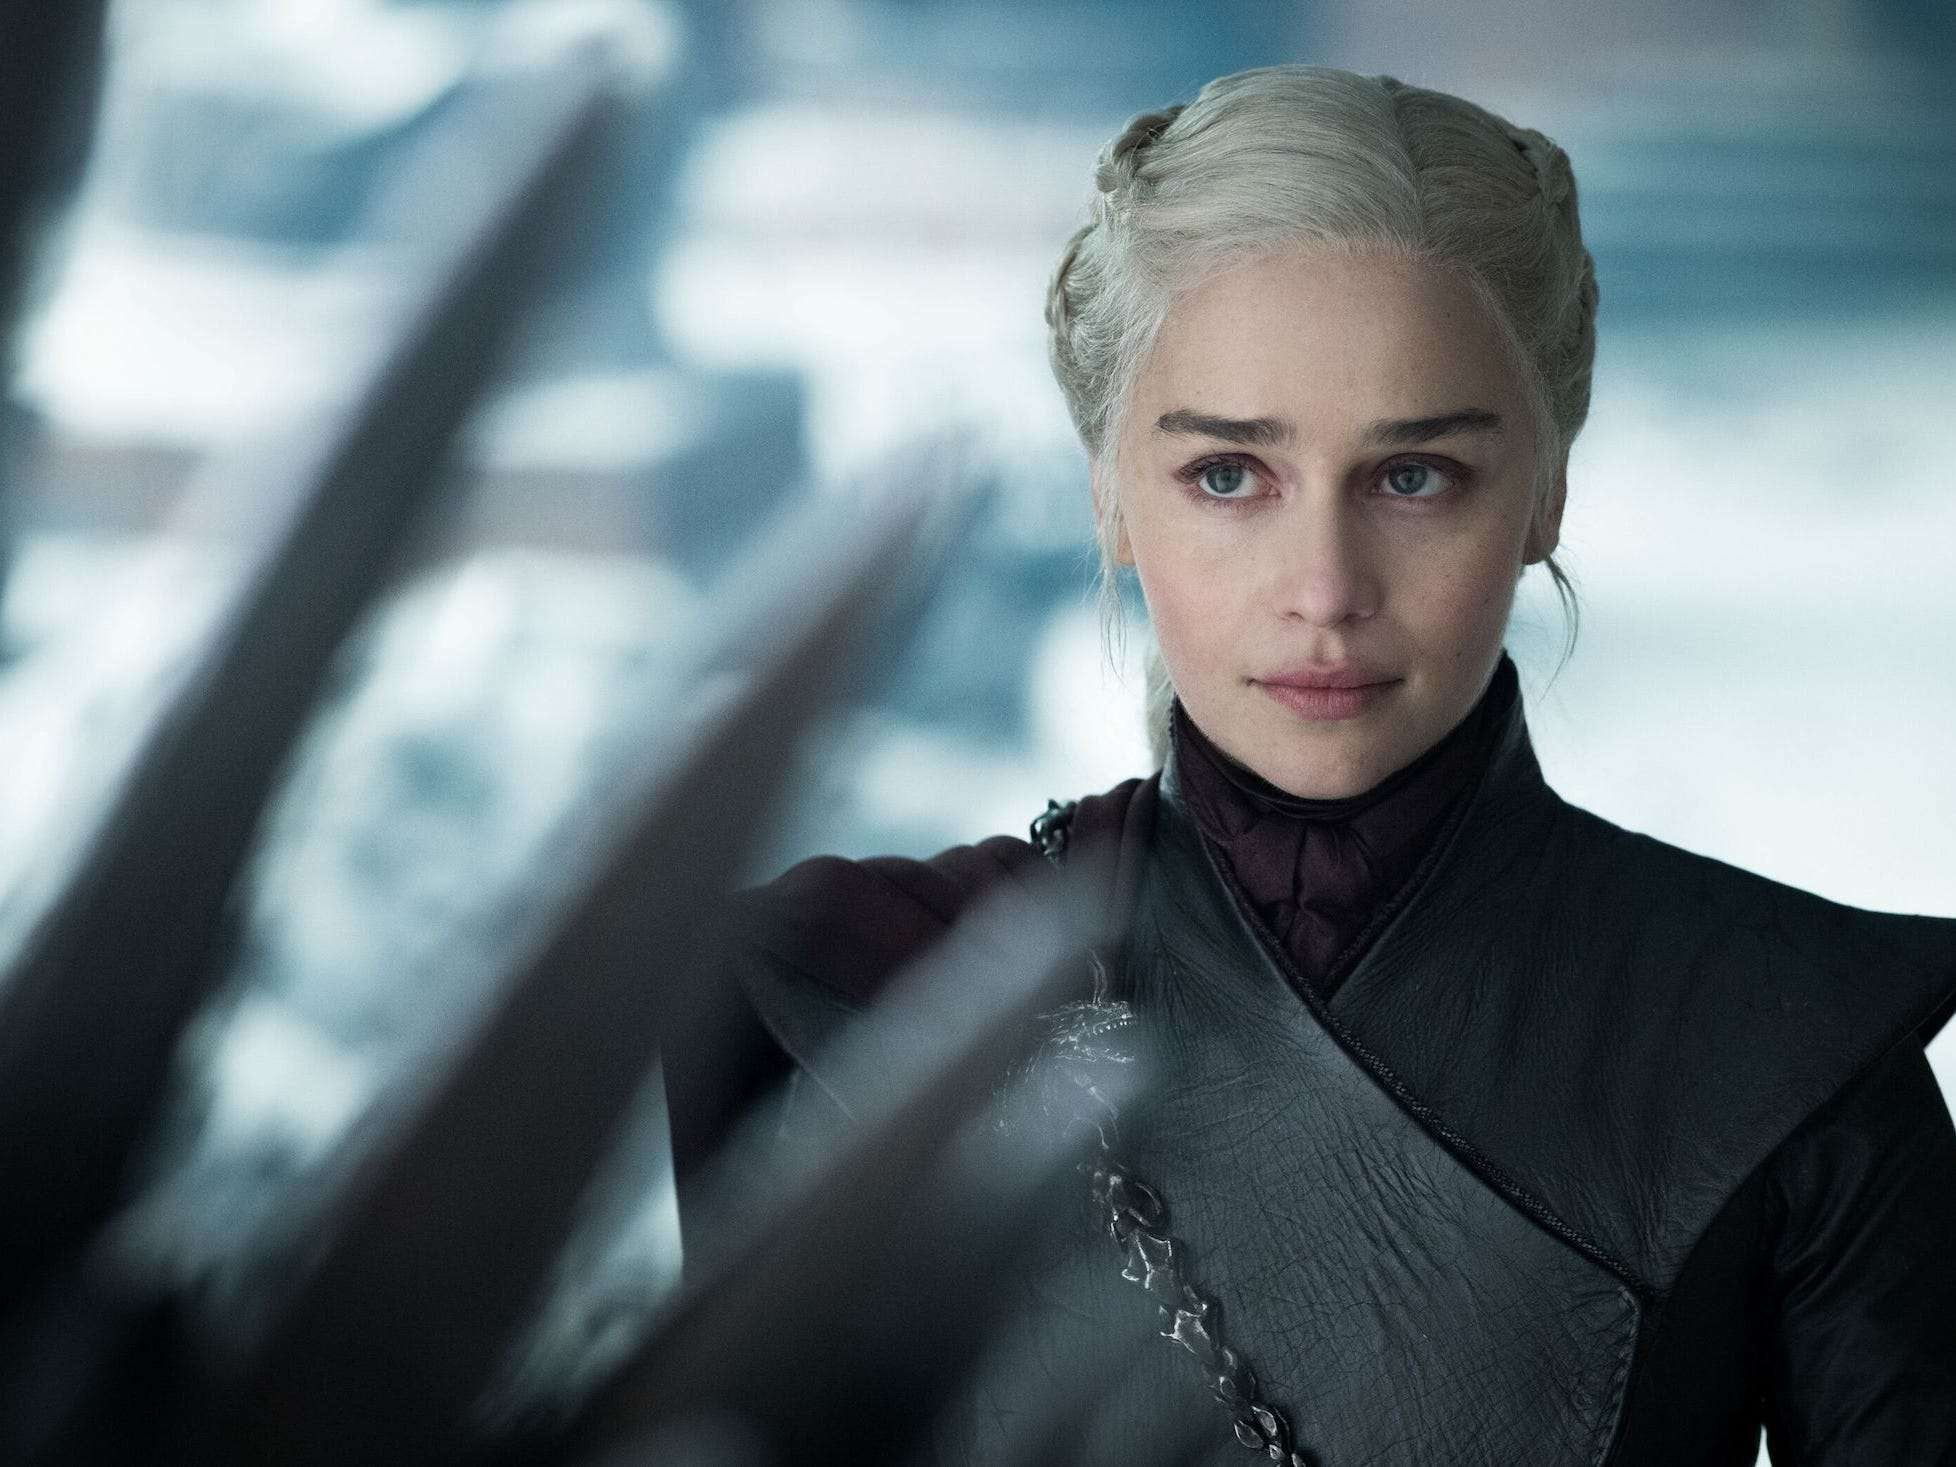 Why The Ending Of Game Of Thrones May Not Align With The Books